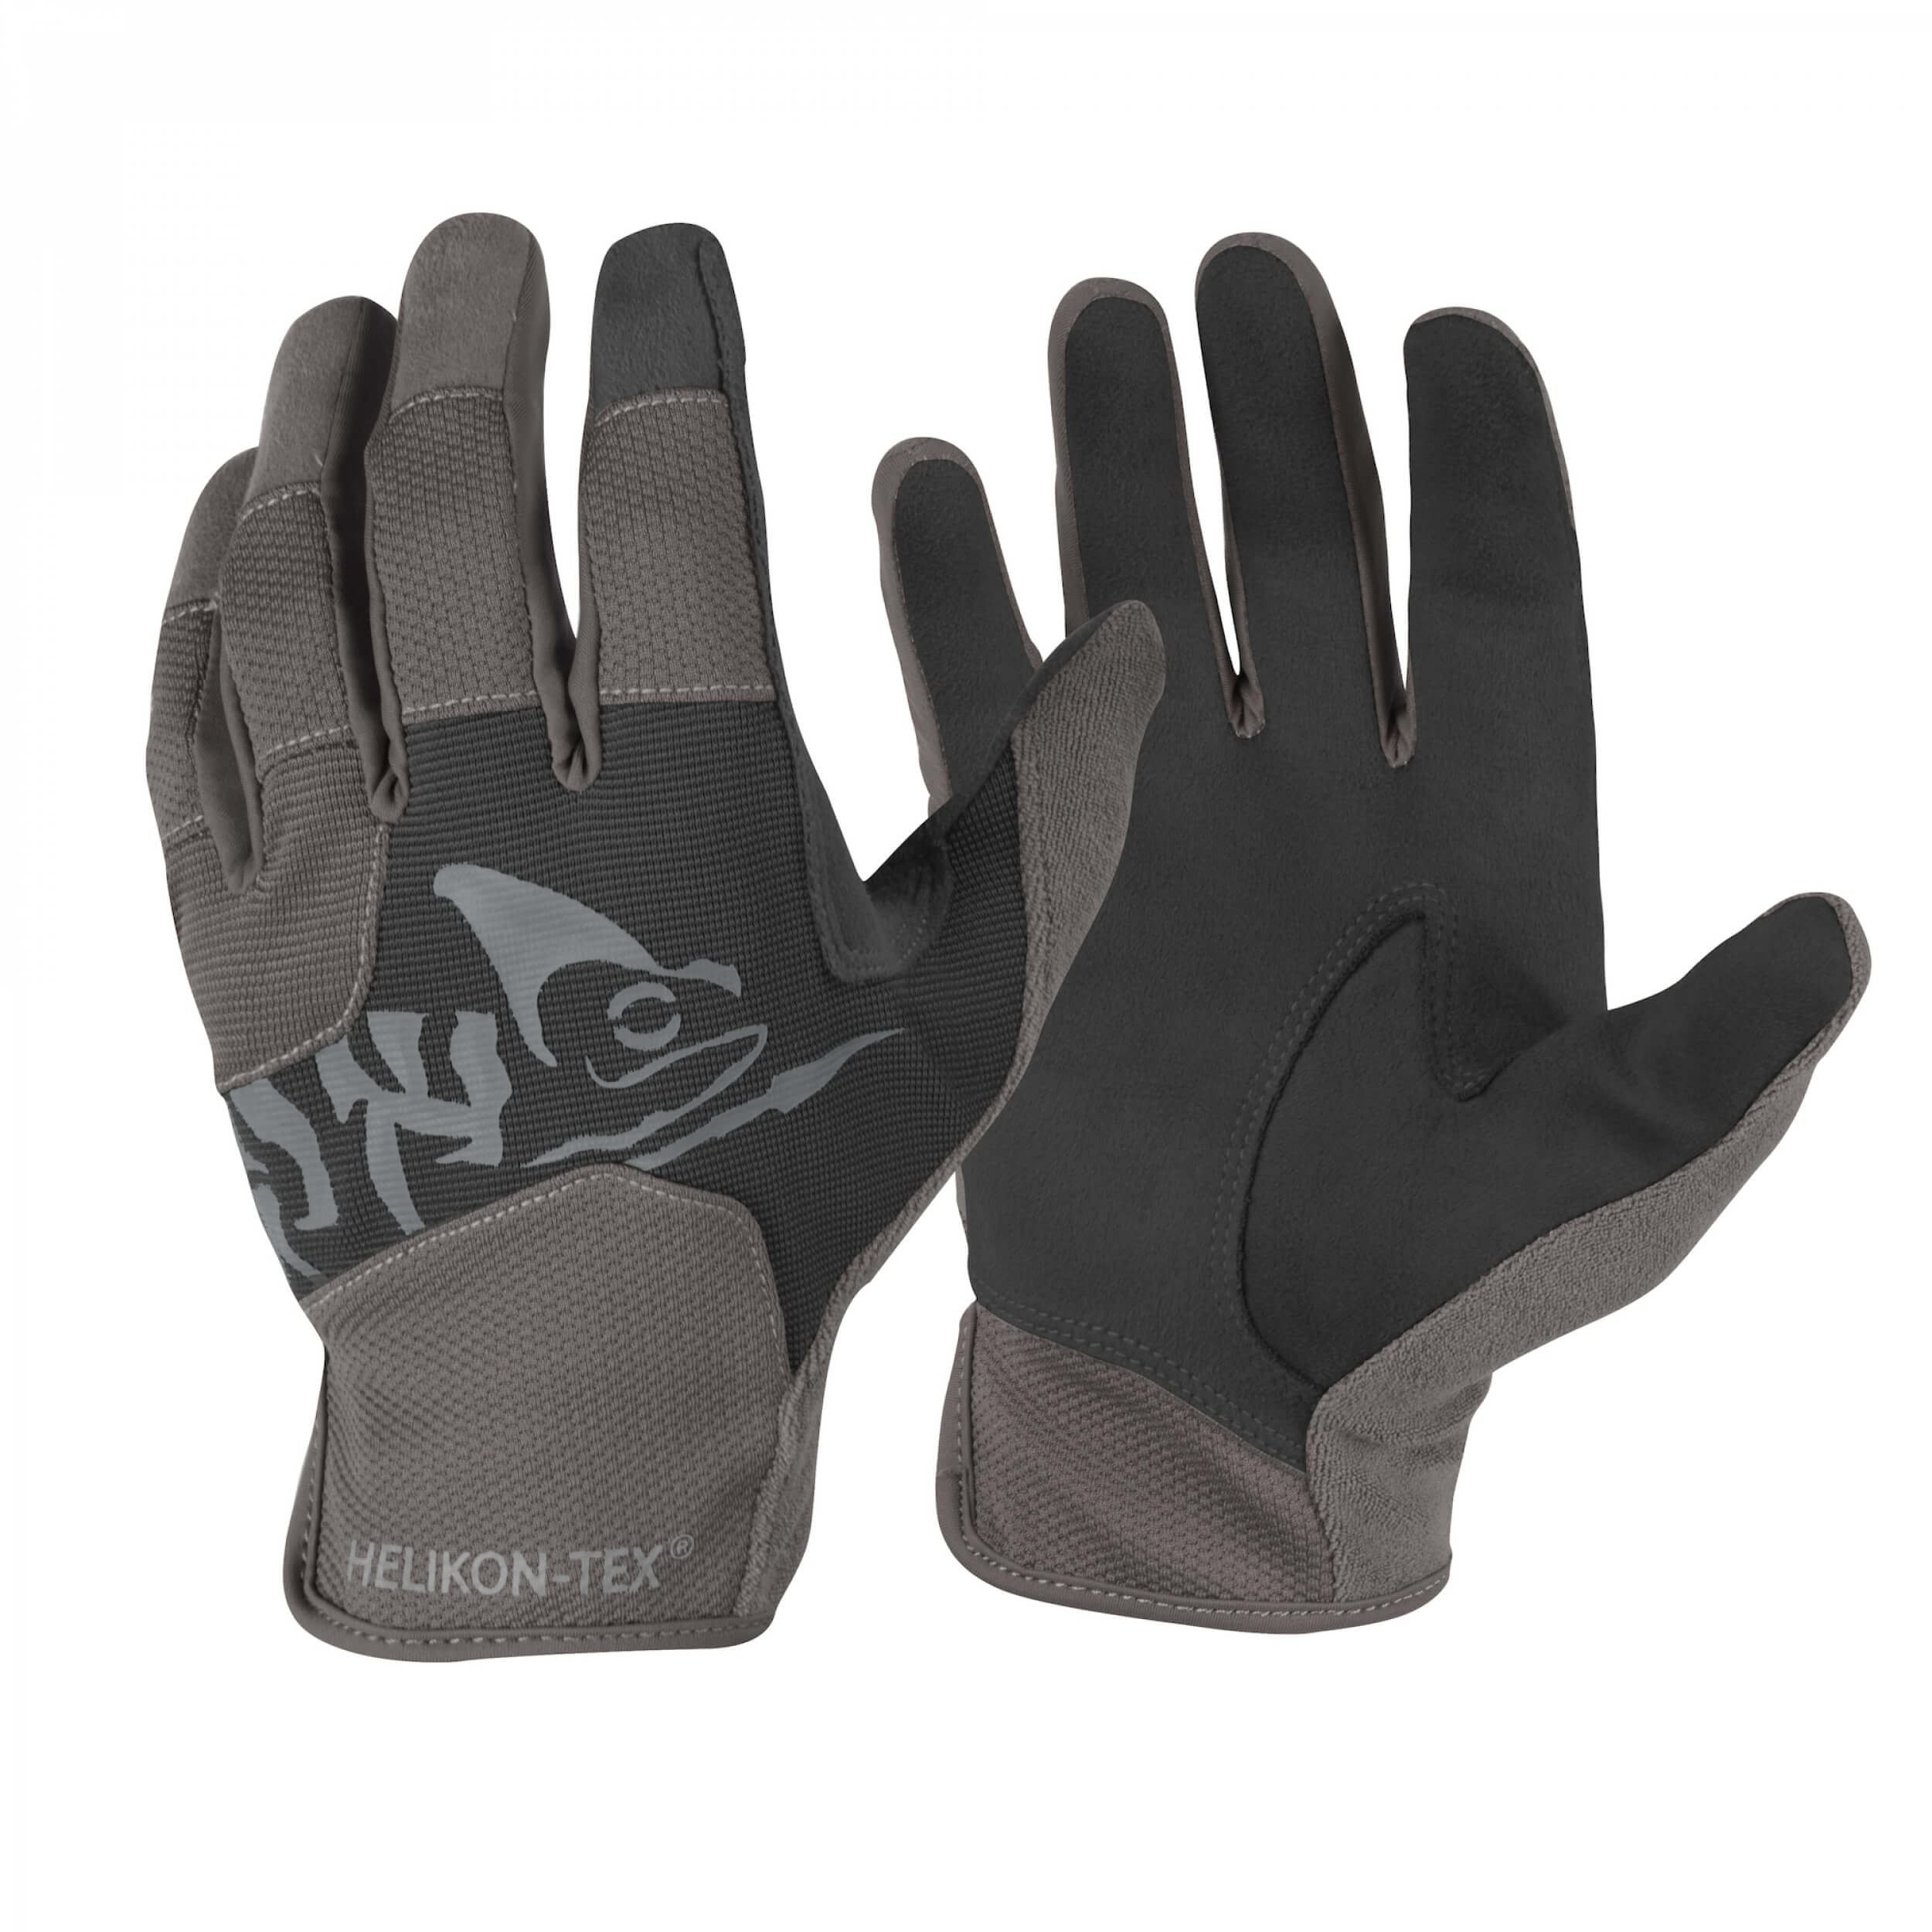 Helikon-Tex All Round Fit Tactical Gloves Light - Black / Shadow Grey A